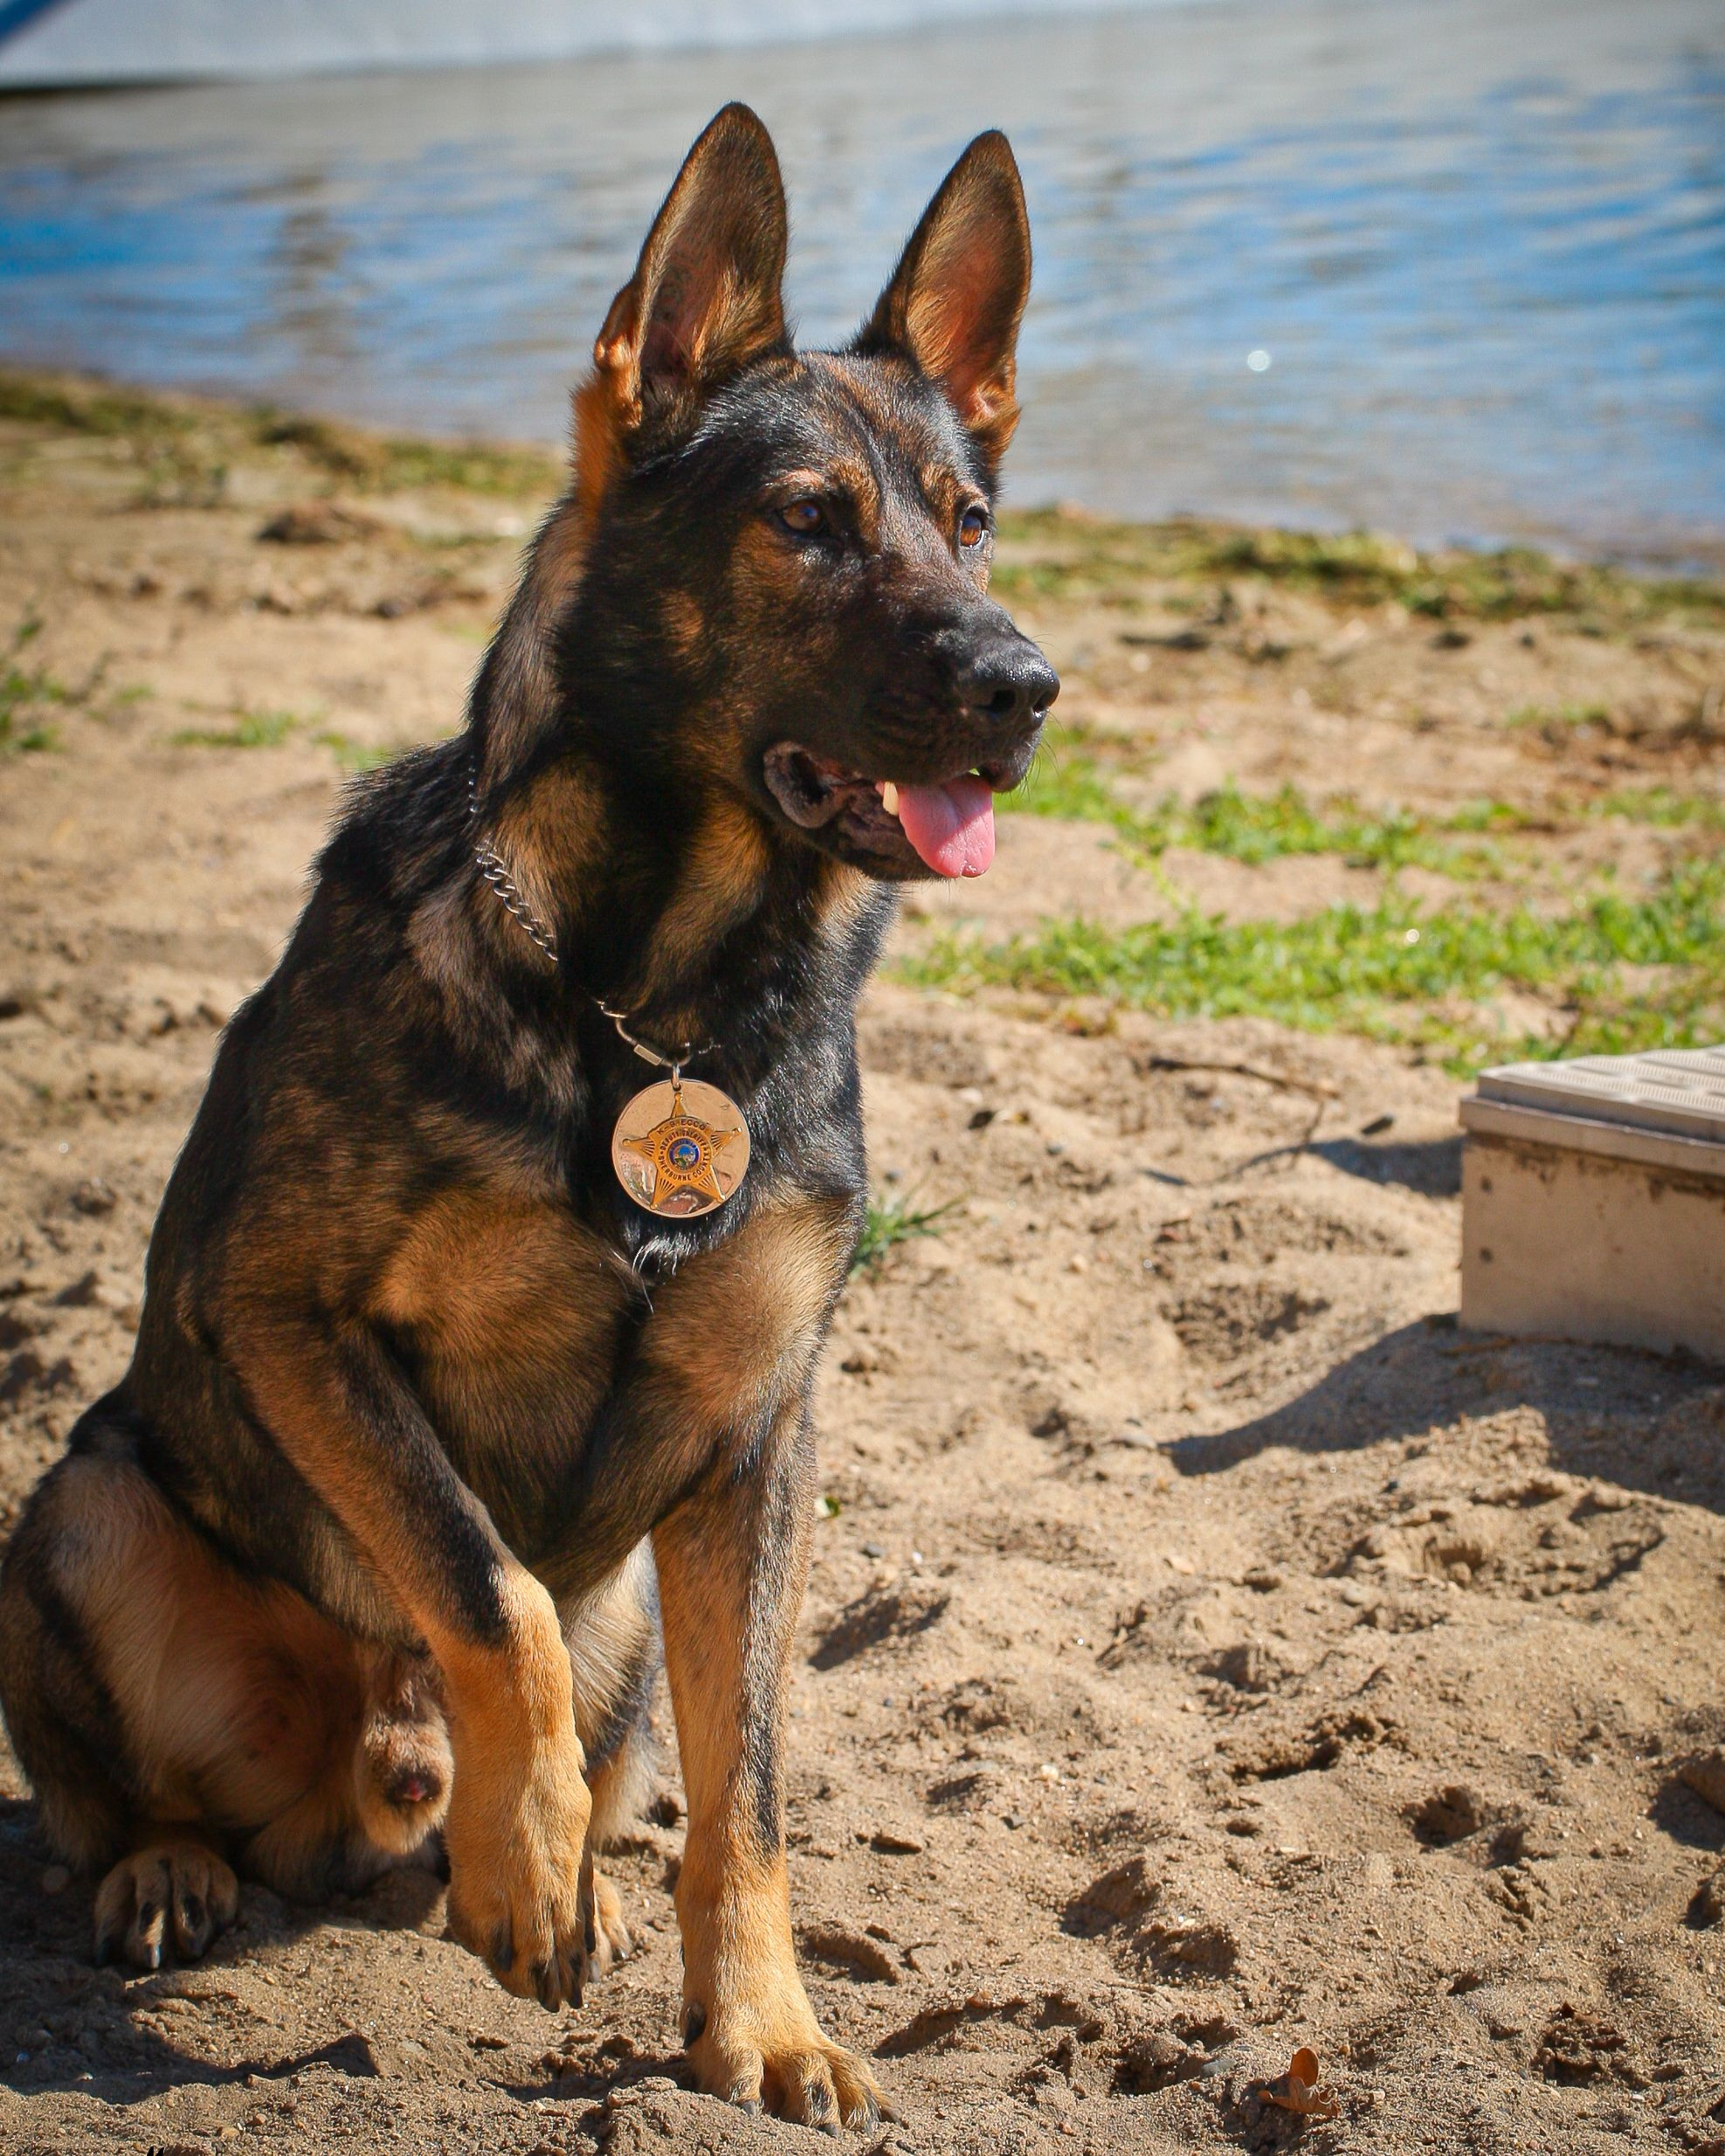 Ecco Is A German Shepherd K 9 With The U S Police Canine